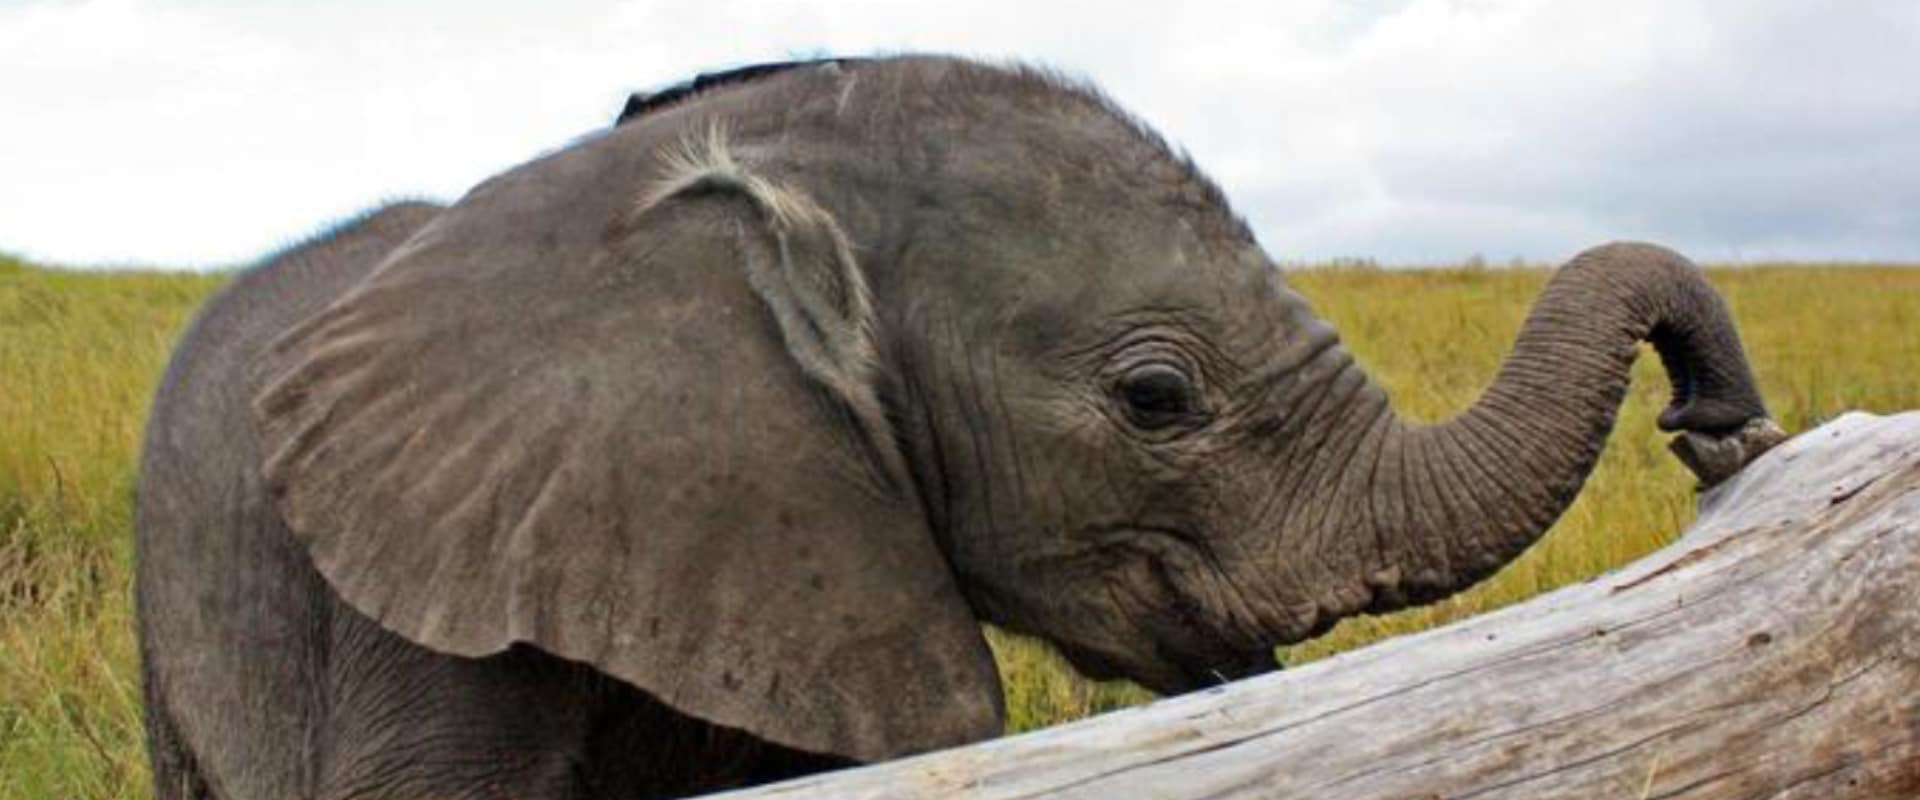 Visit the orphaned elephants in their sanctuary